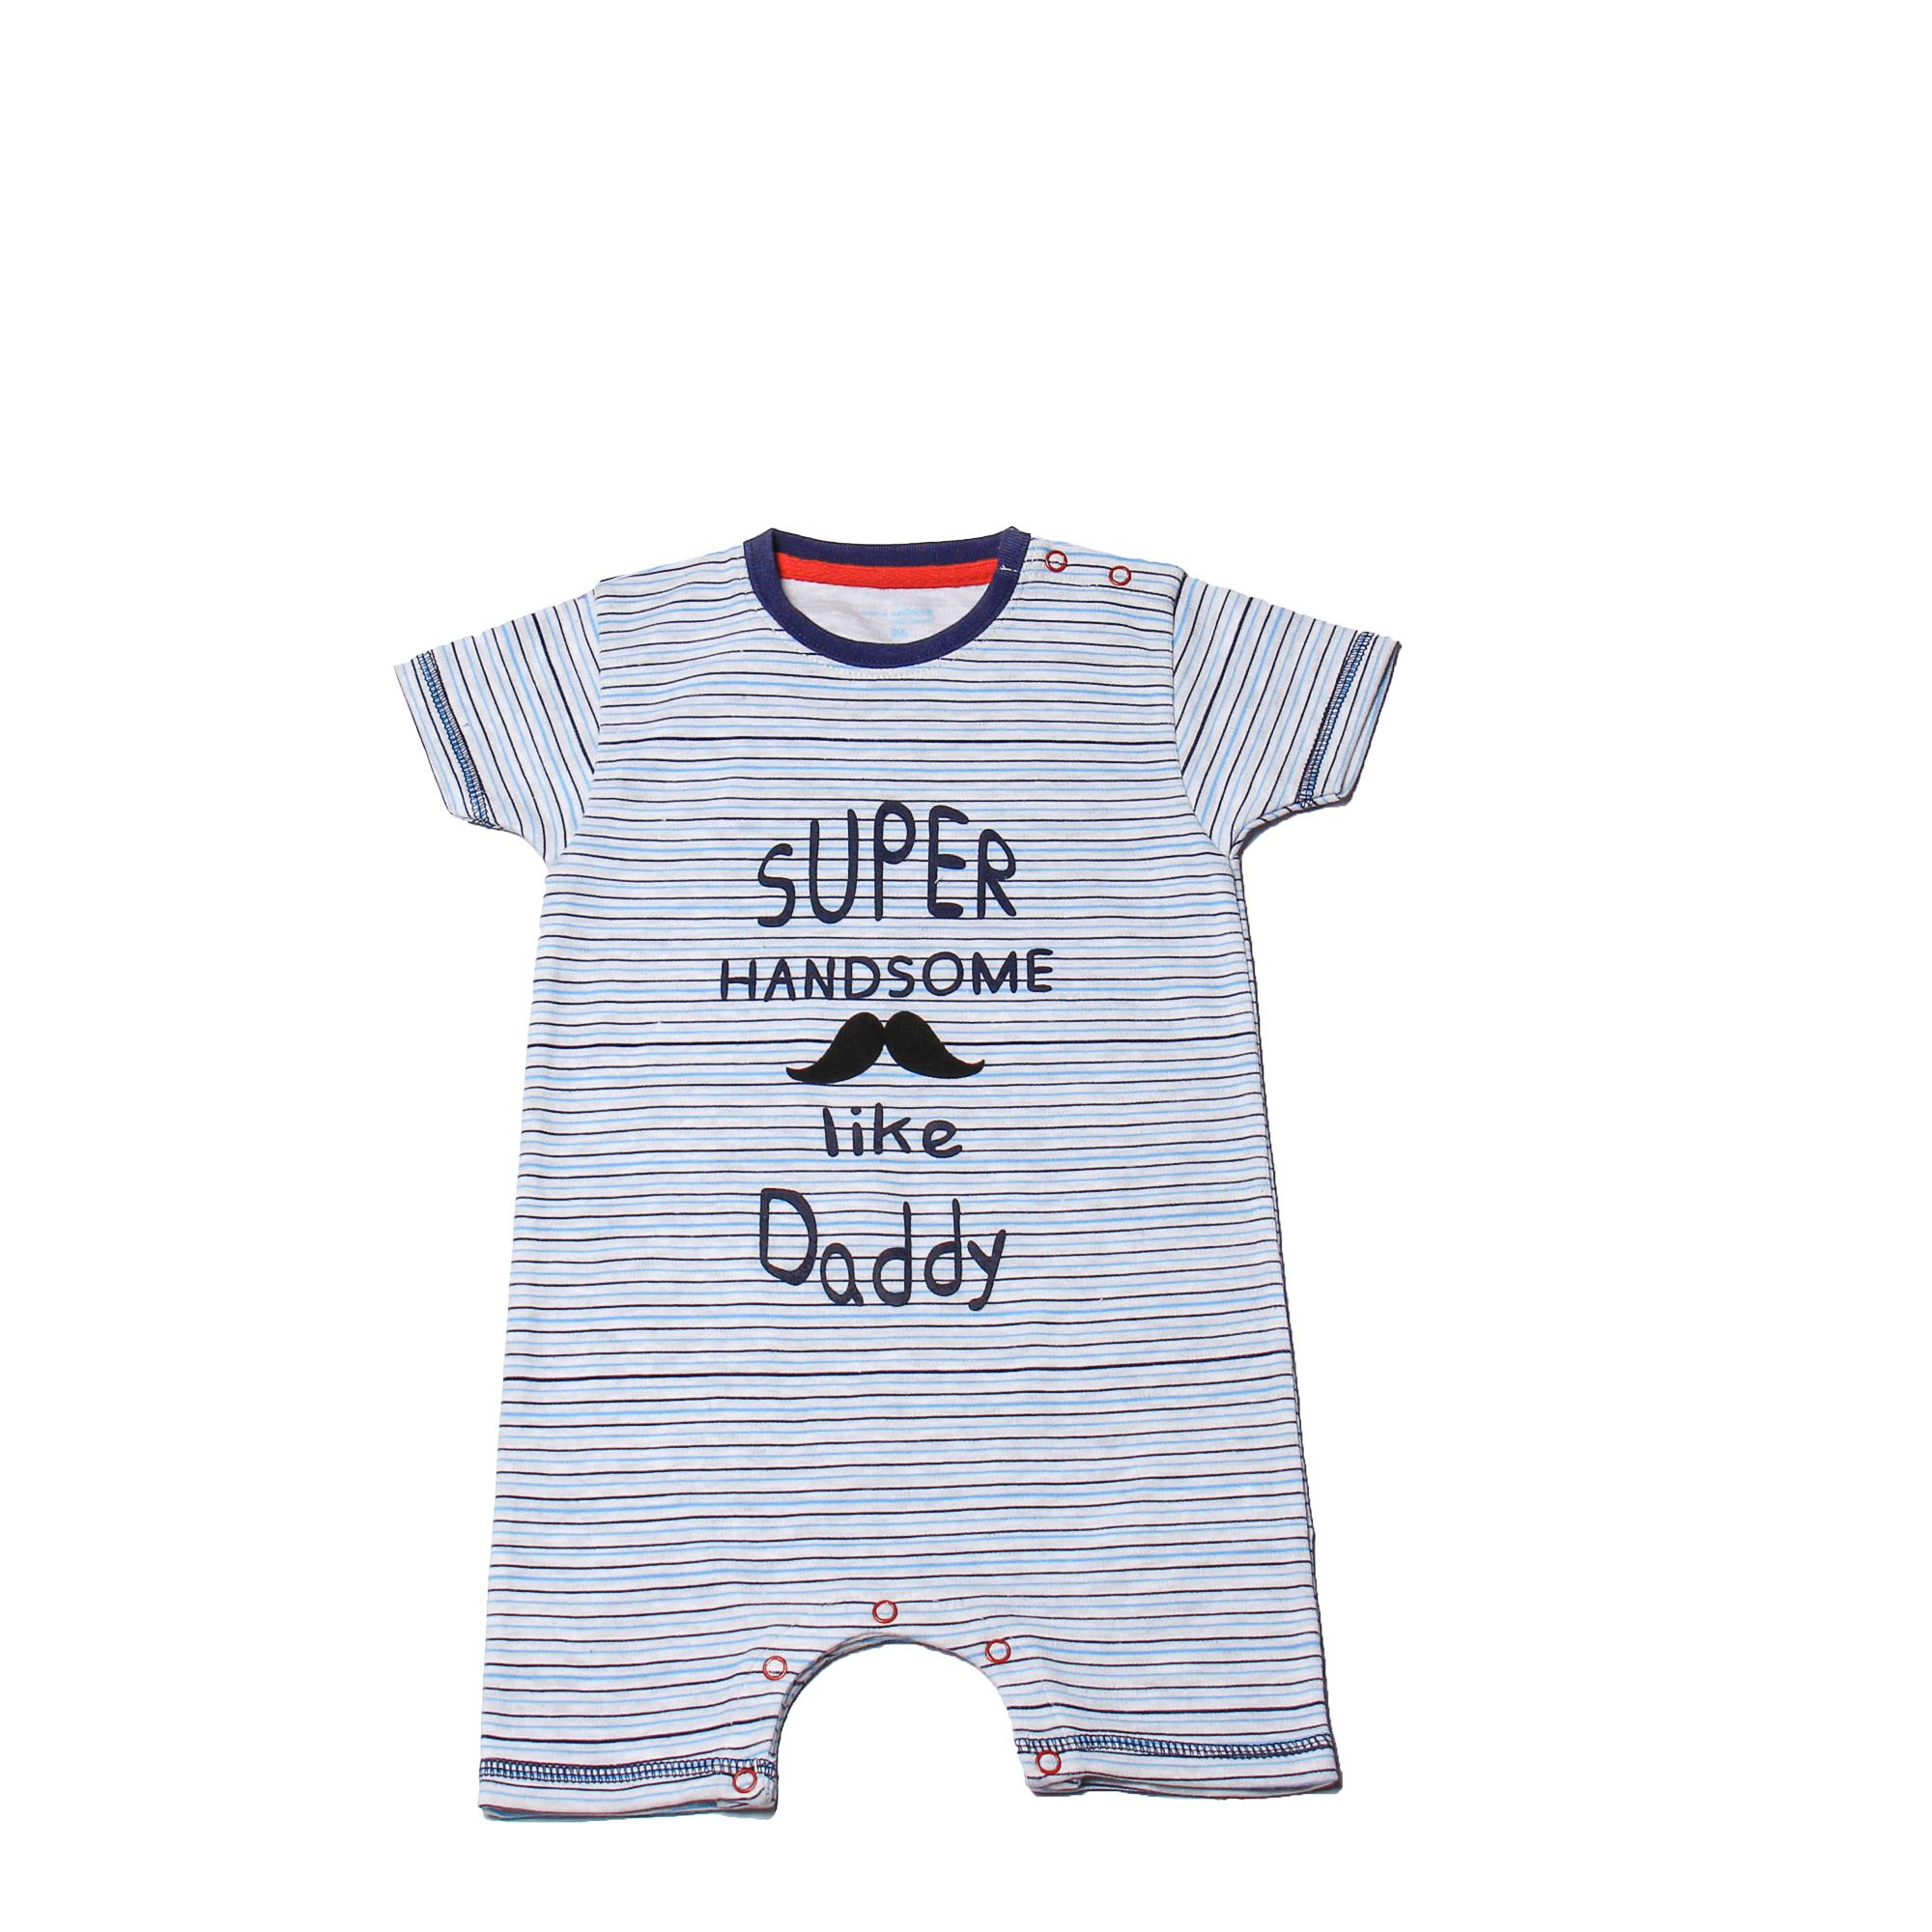 eae10938 Featherhead NewBorn Baby Bodysuits/Rompers for Boys made with 100%  Breathable Soft Cotton